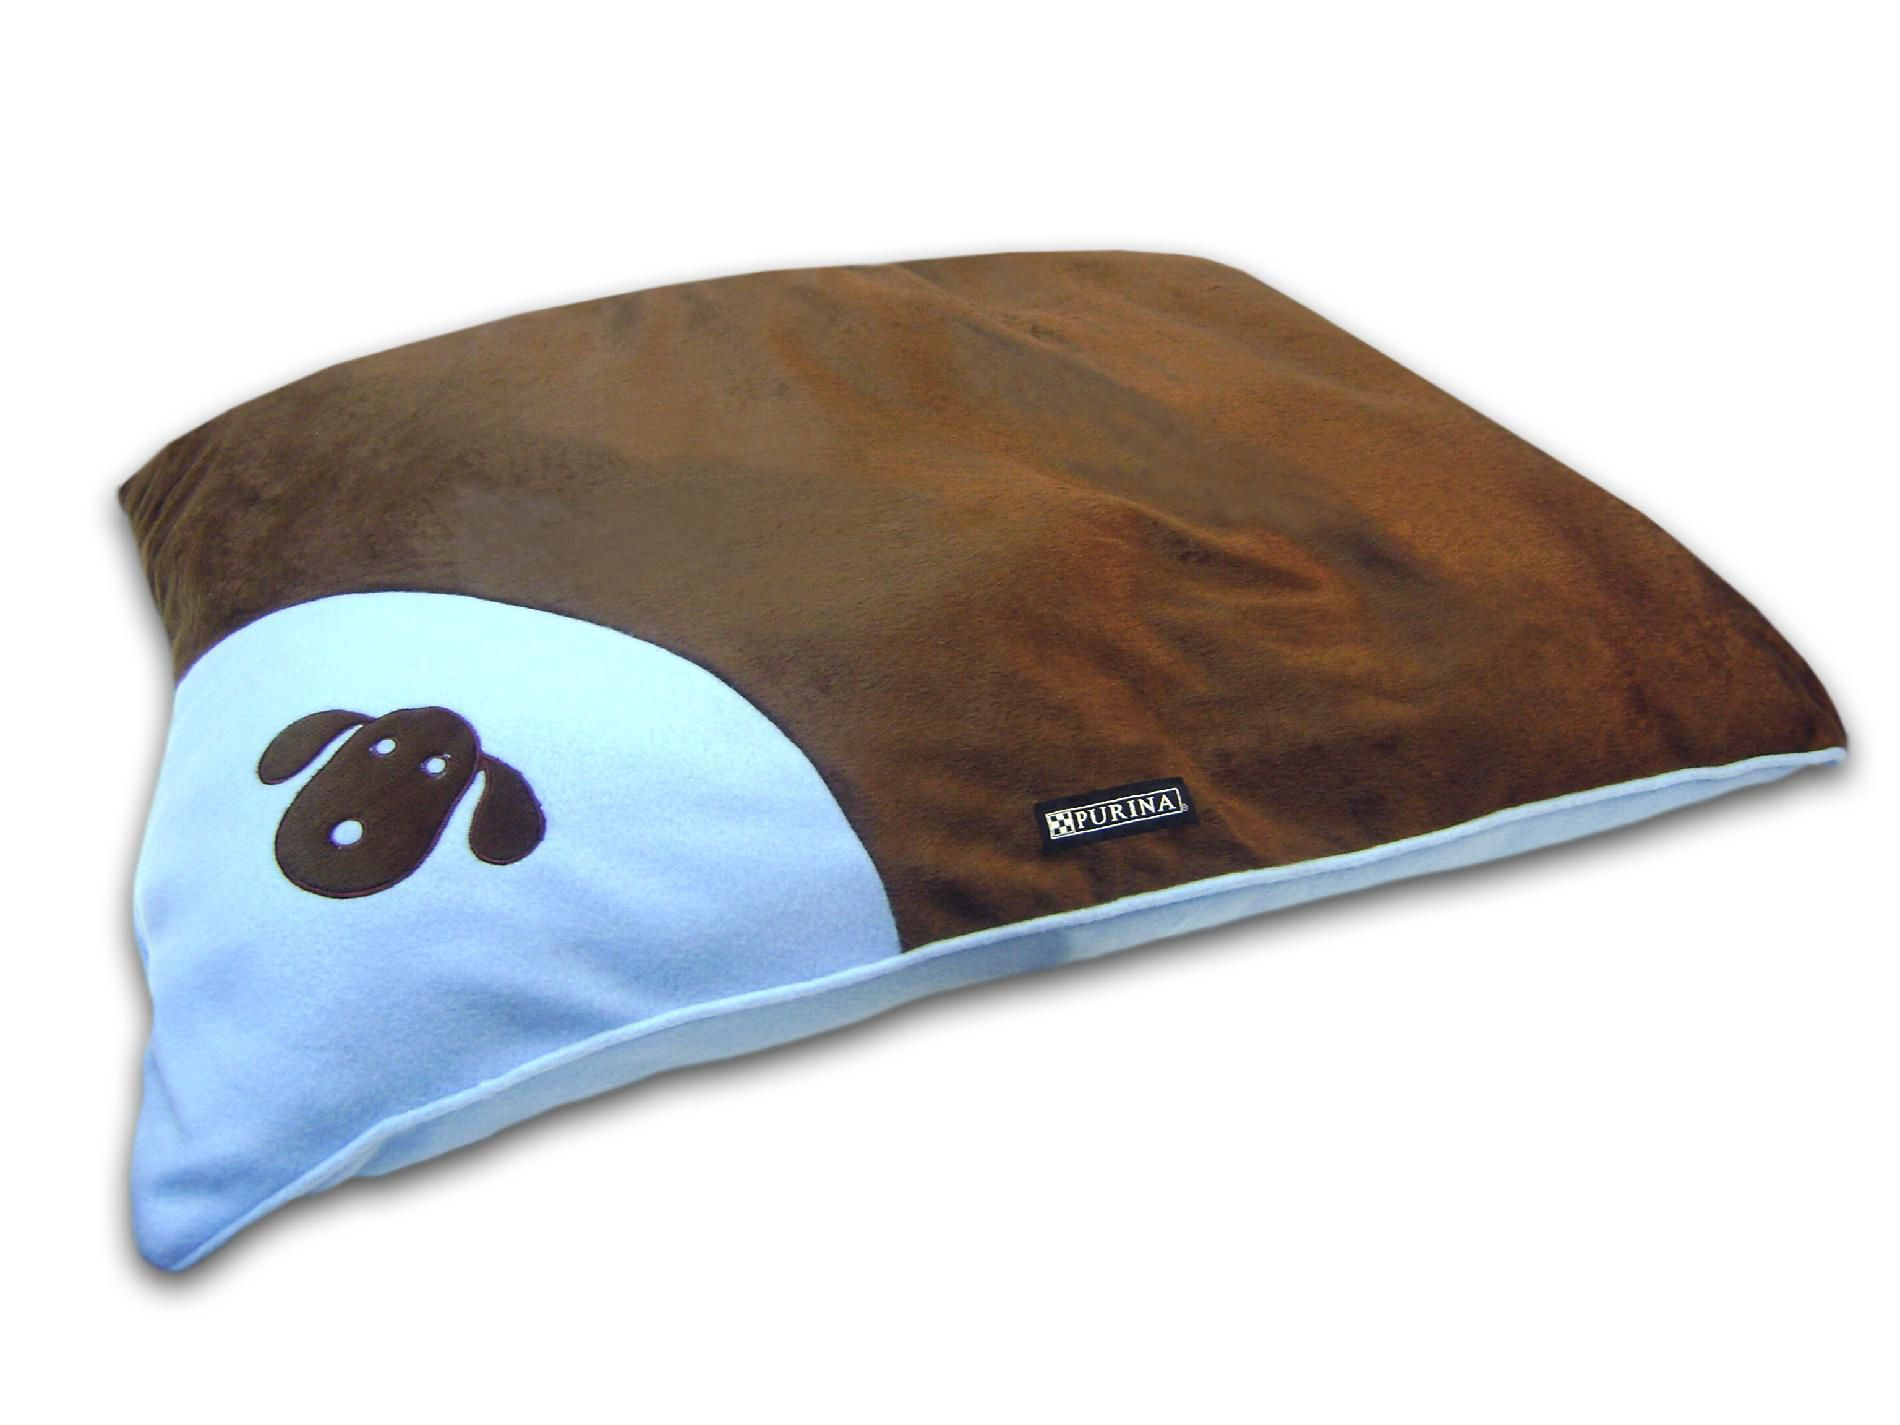 Pooch Pad Reusable Housebreaking Pad 27x36                                                                                       at mygofer.com